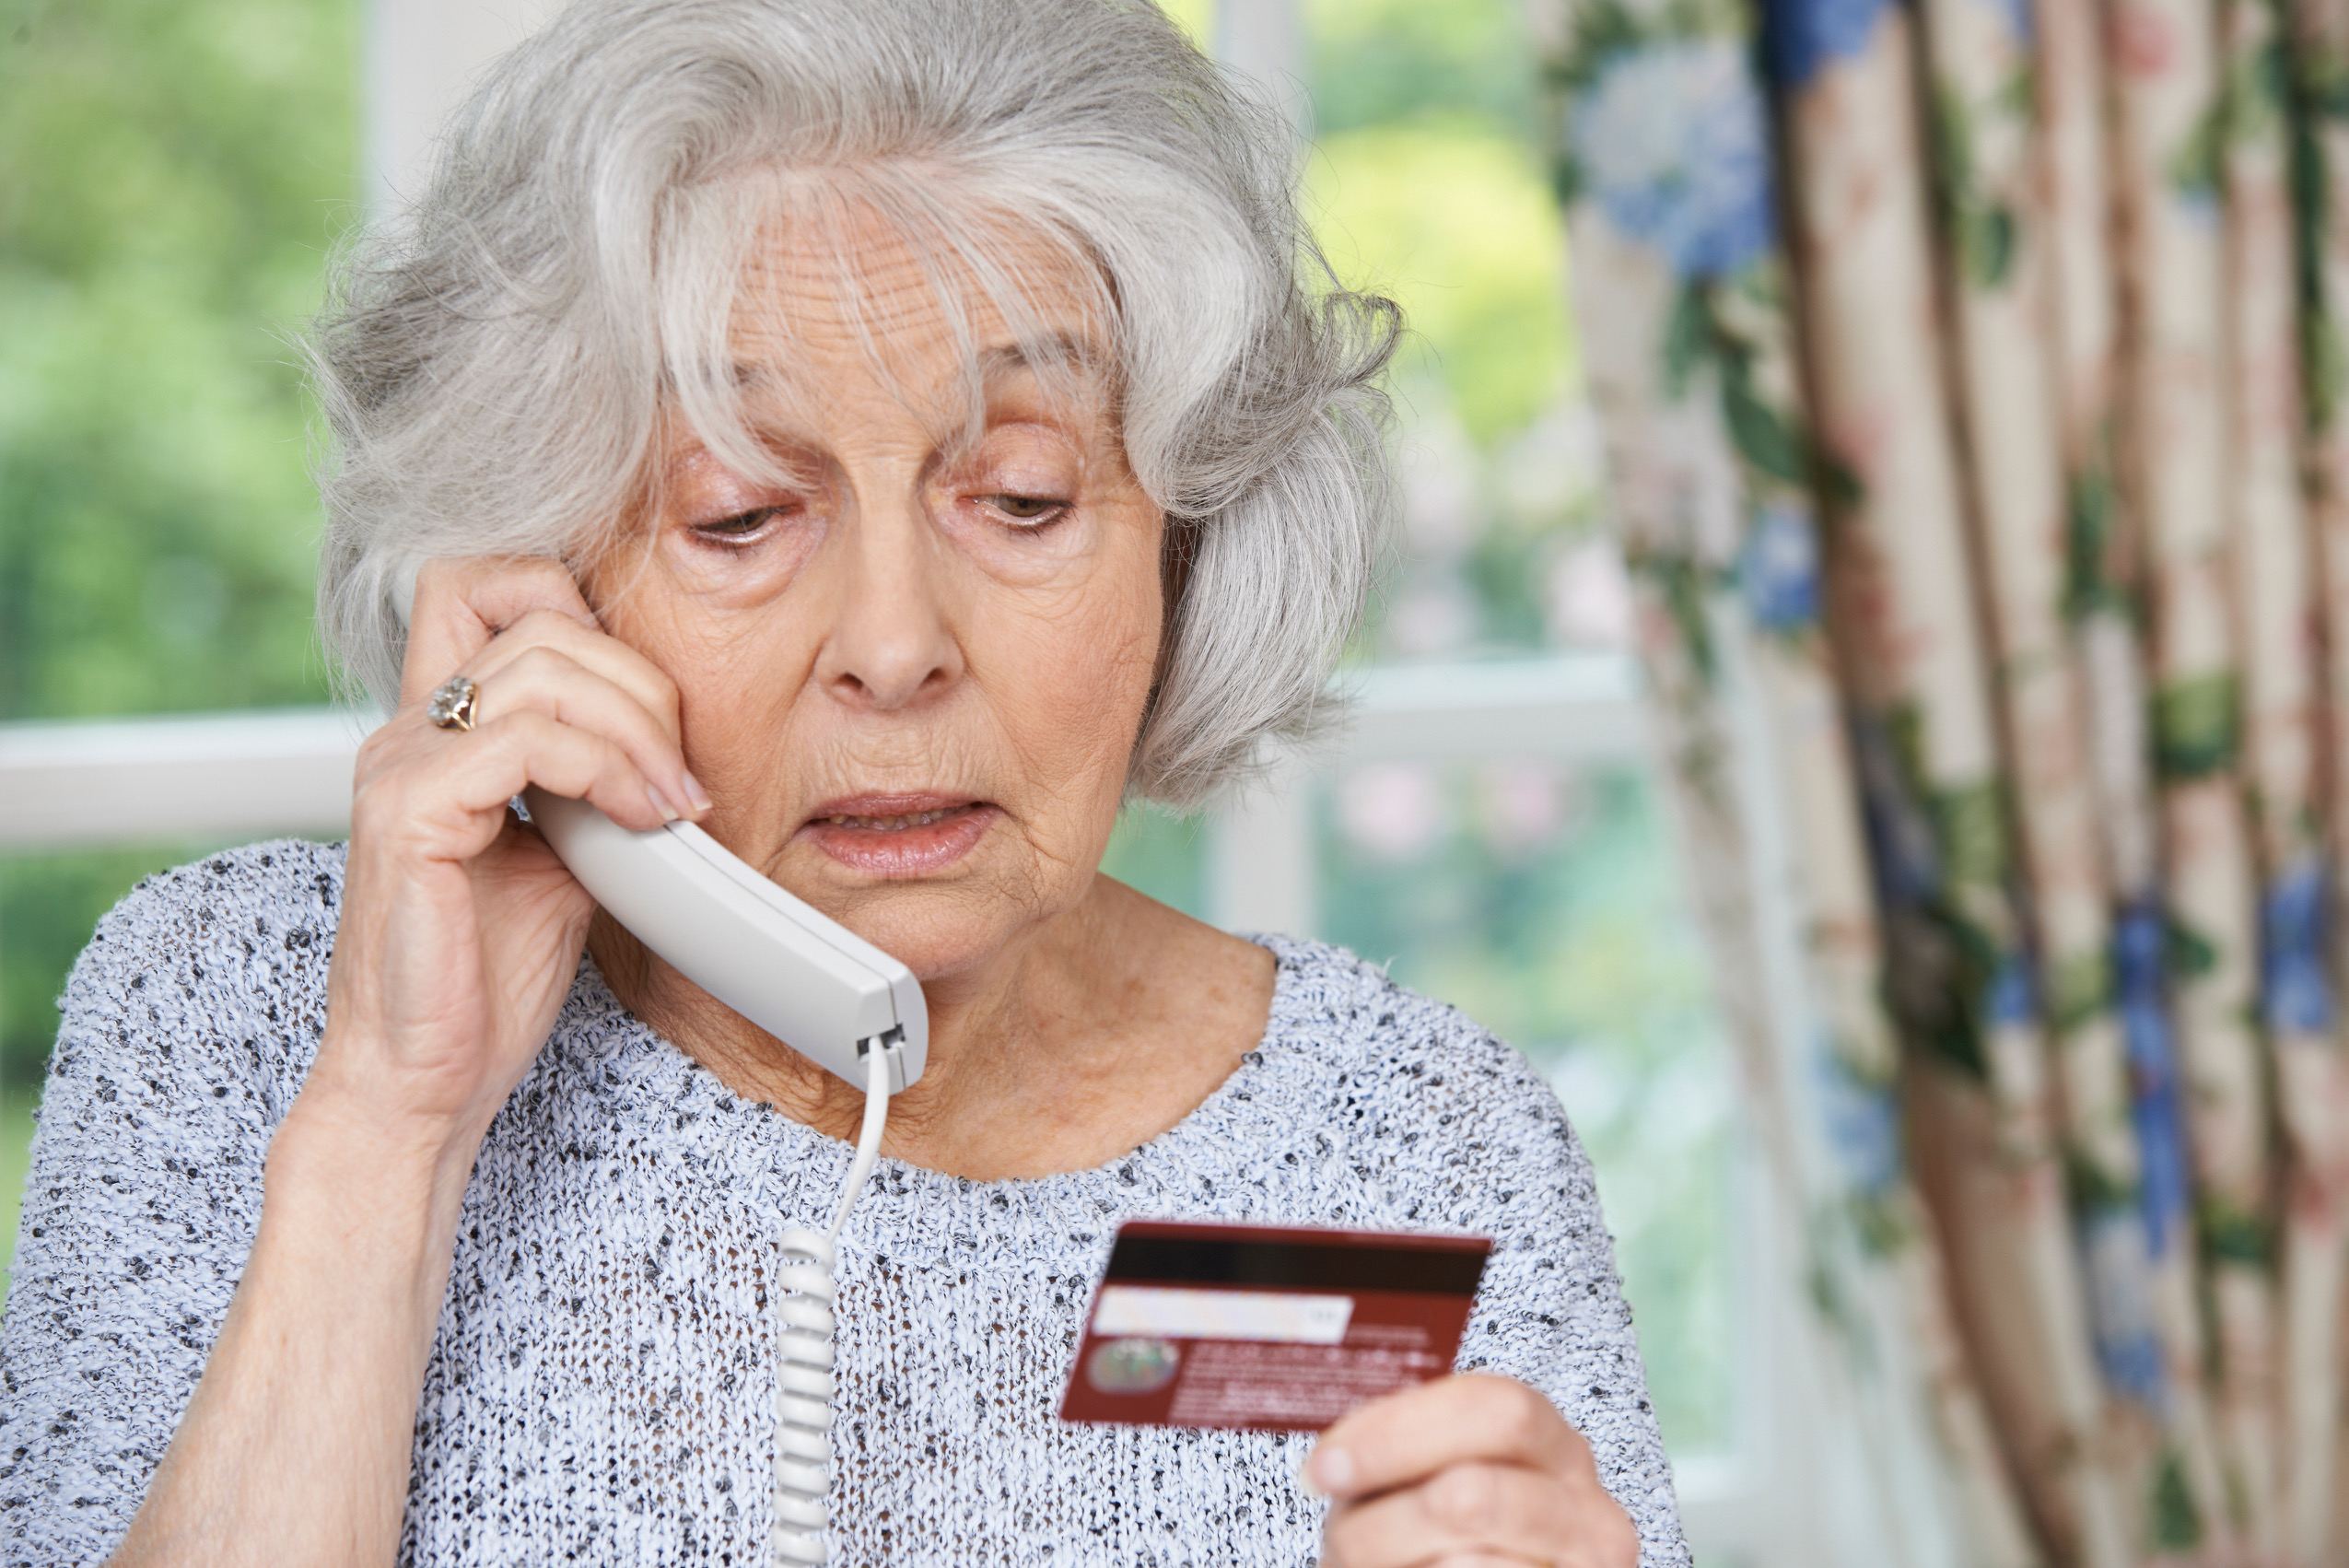 Senior woman giving credit card information over the phone.